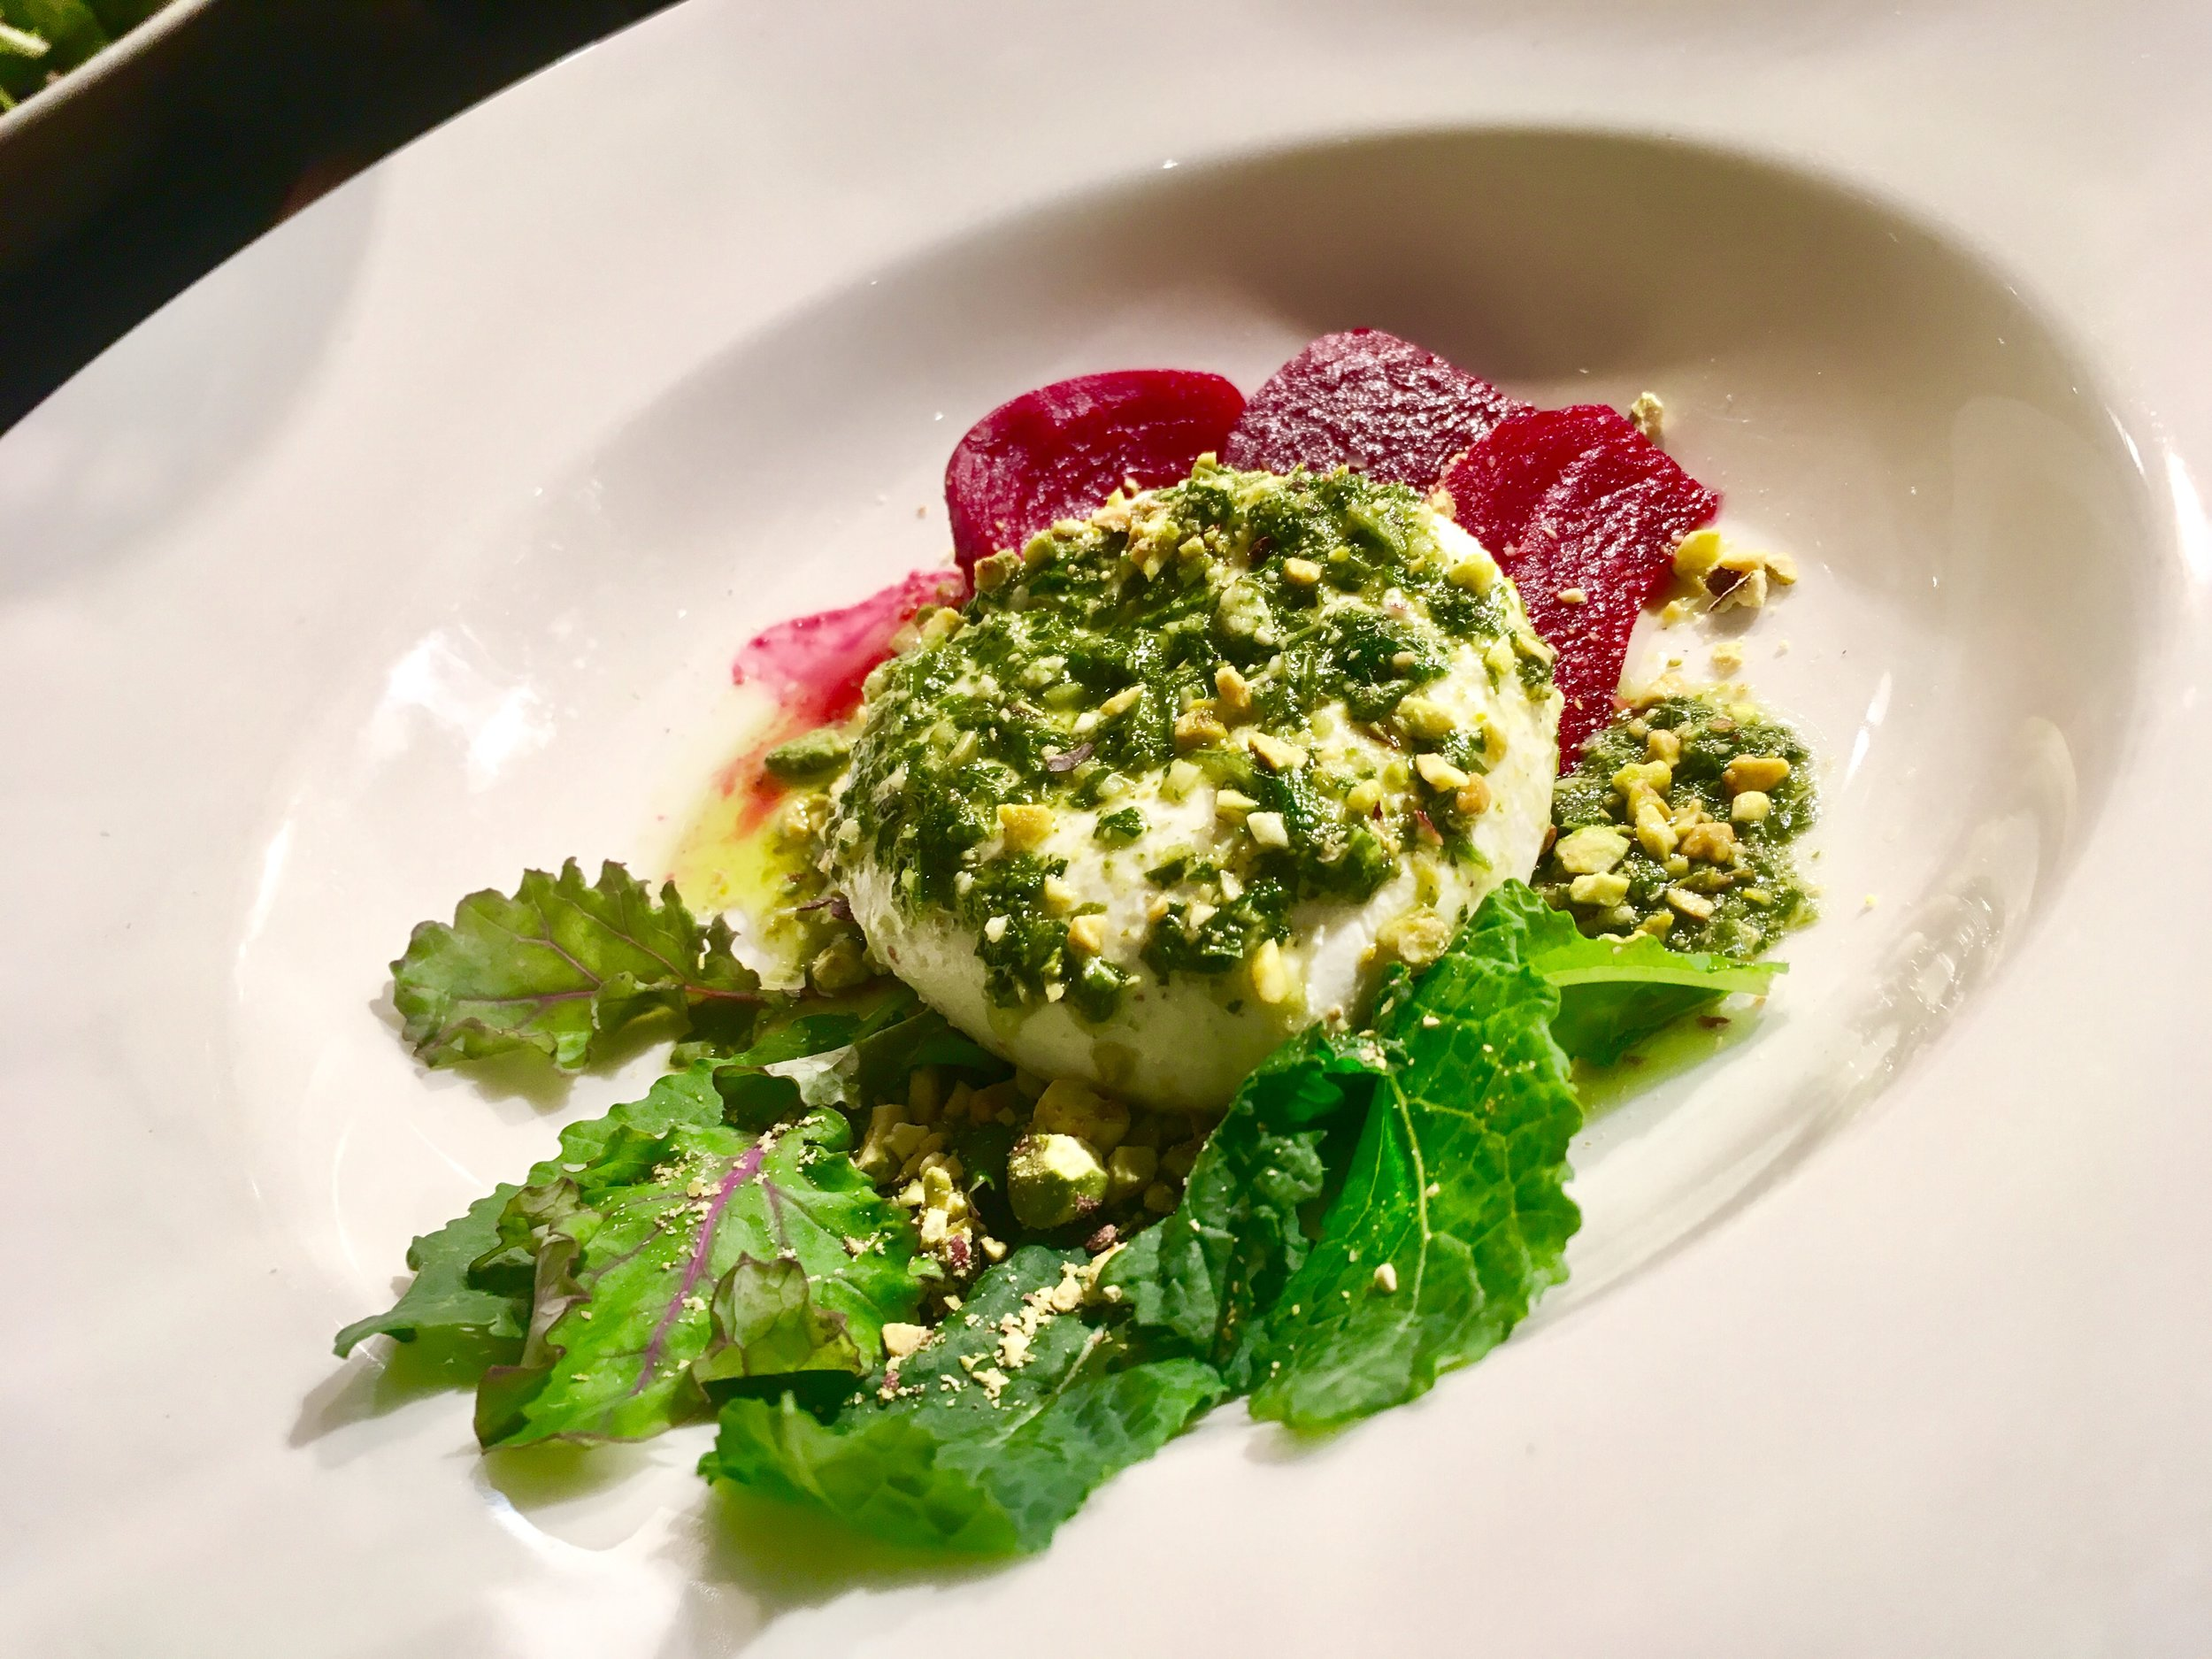 The beet and burrata appetizer from Firewood.